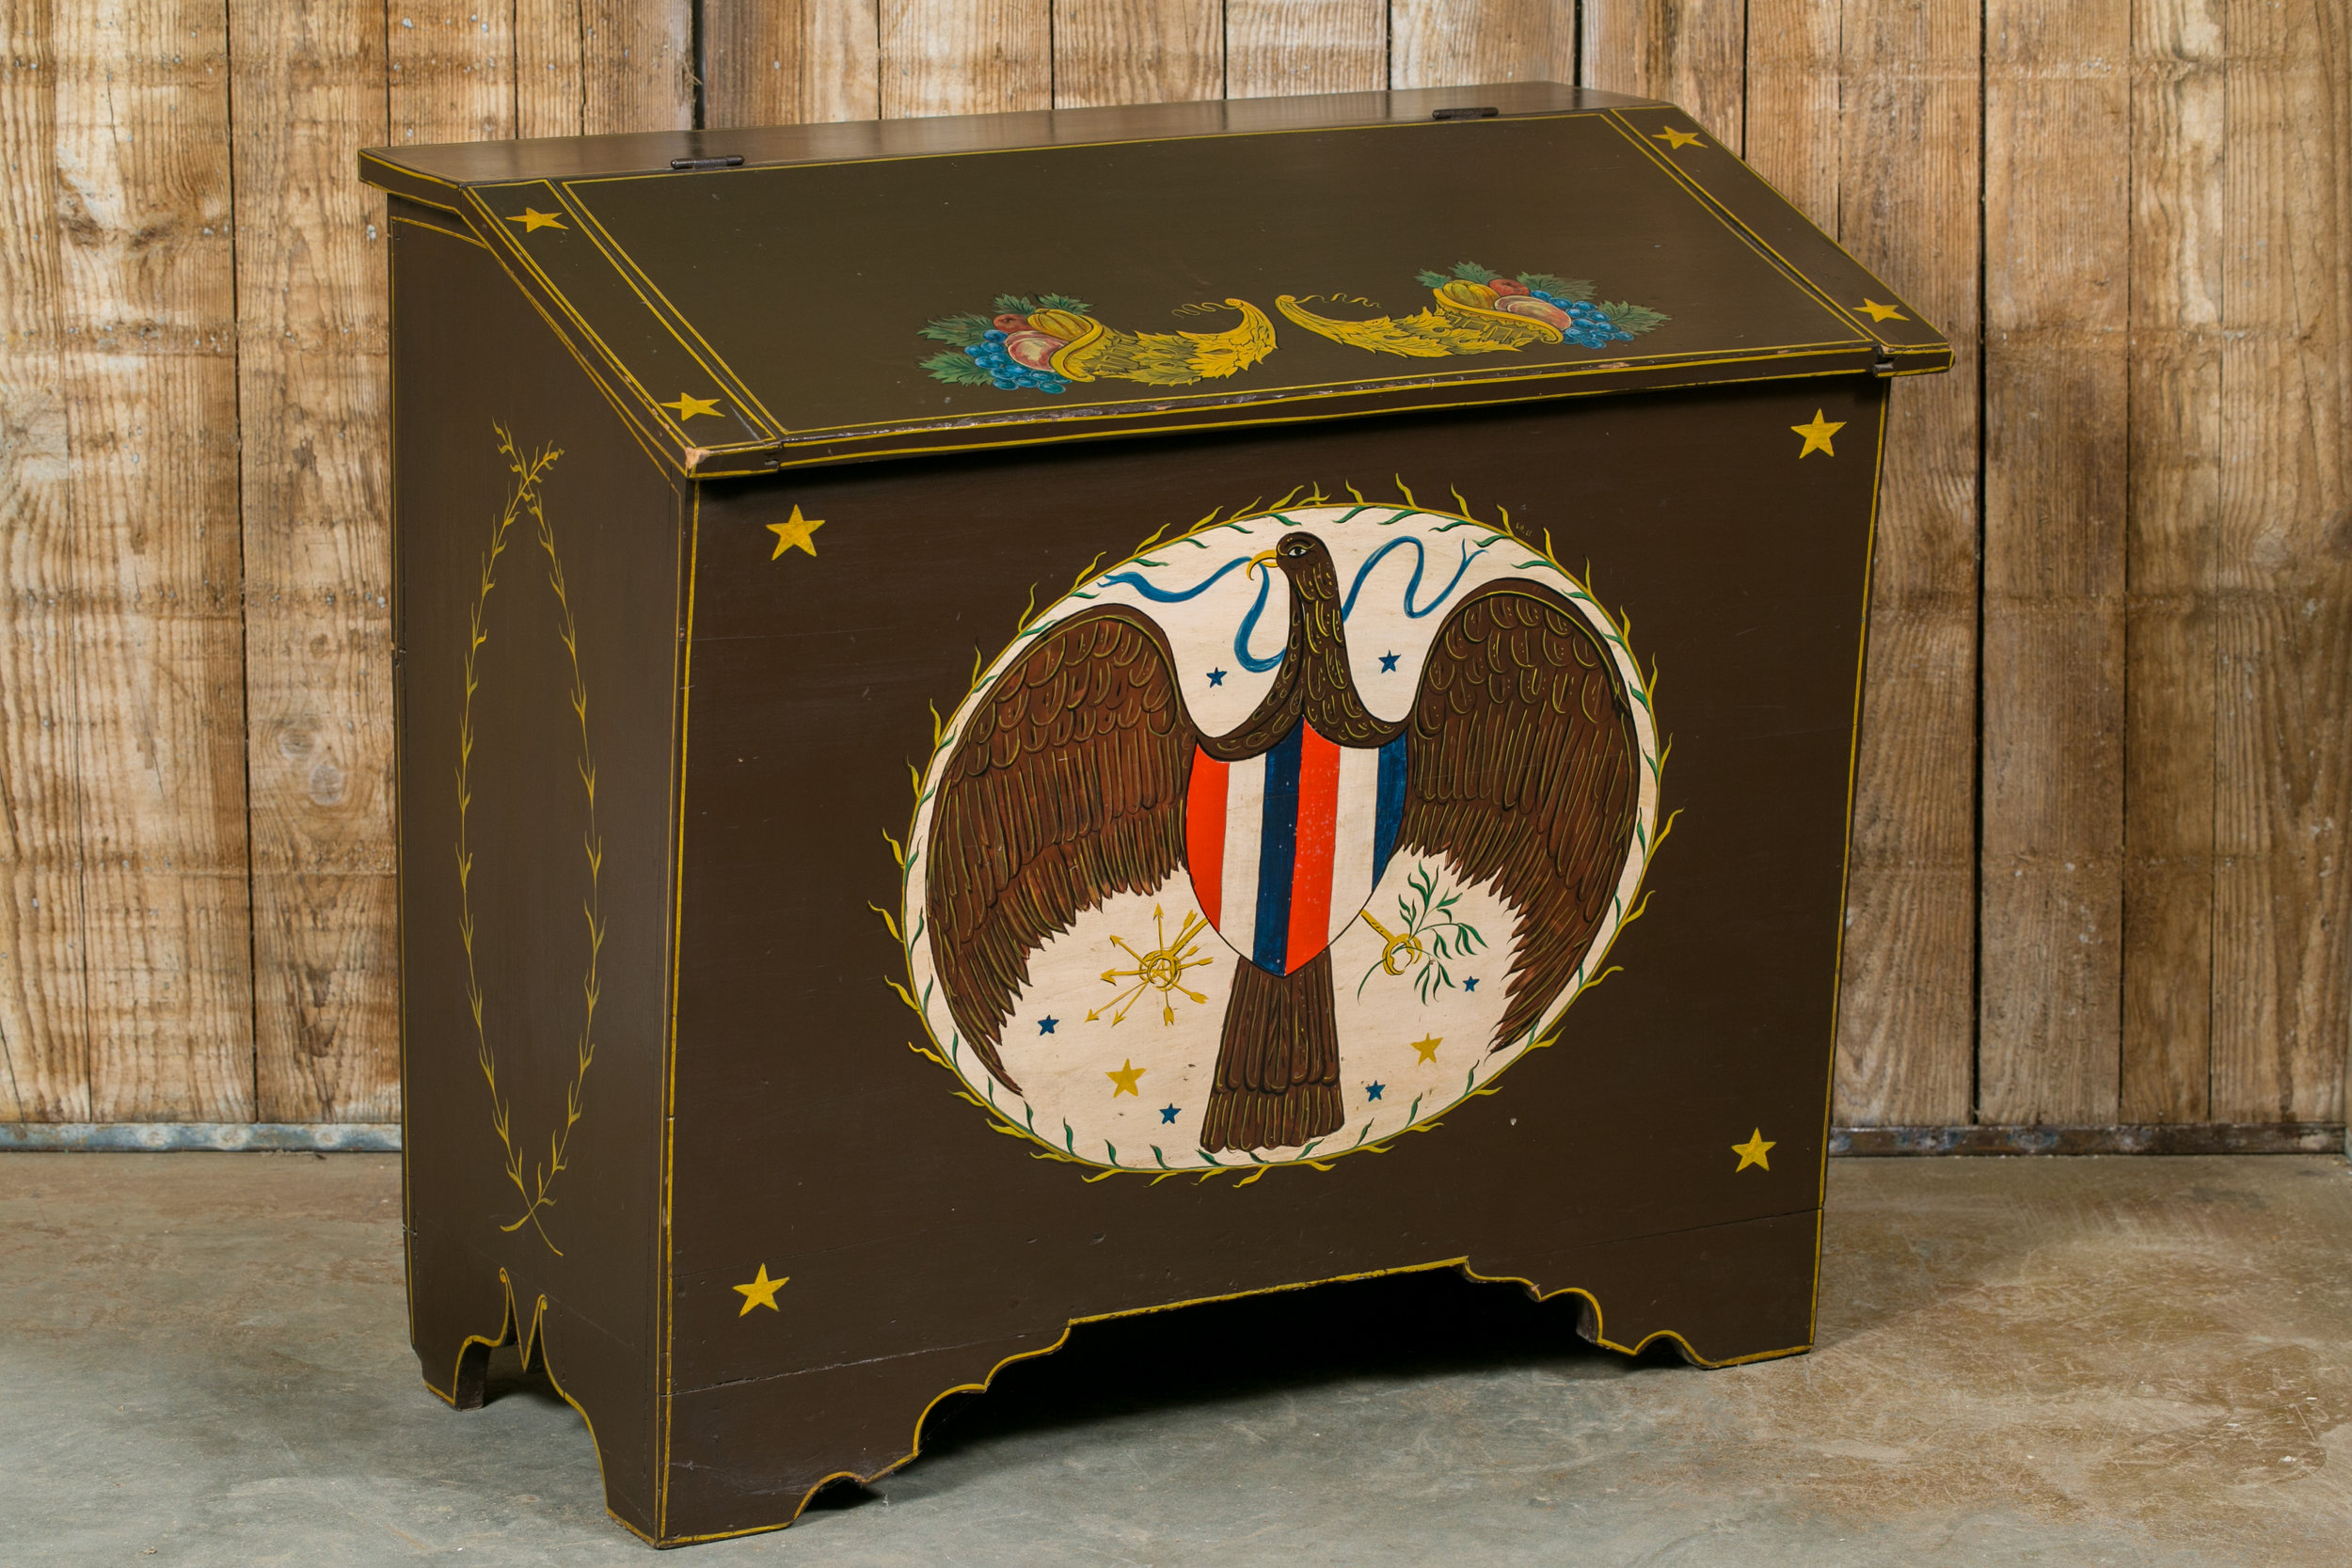 One of a Kind Antique American Blanket Chest Hand-Painted by Lew Hudnall